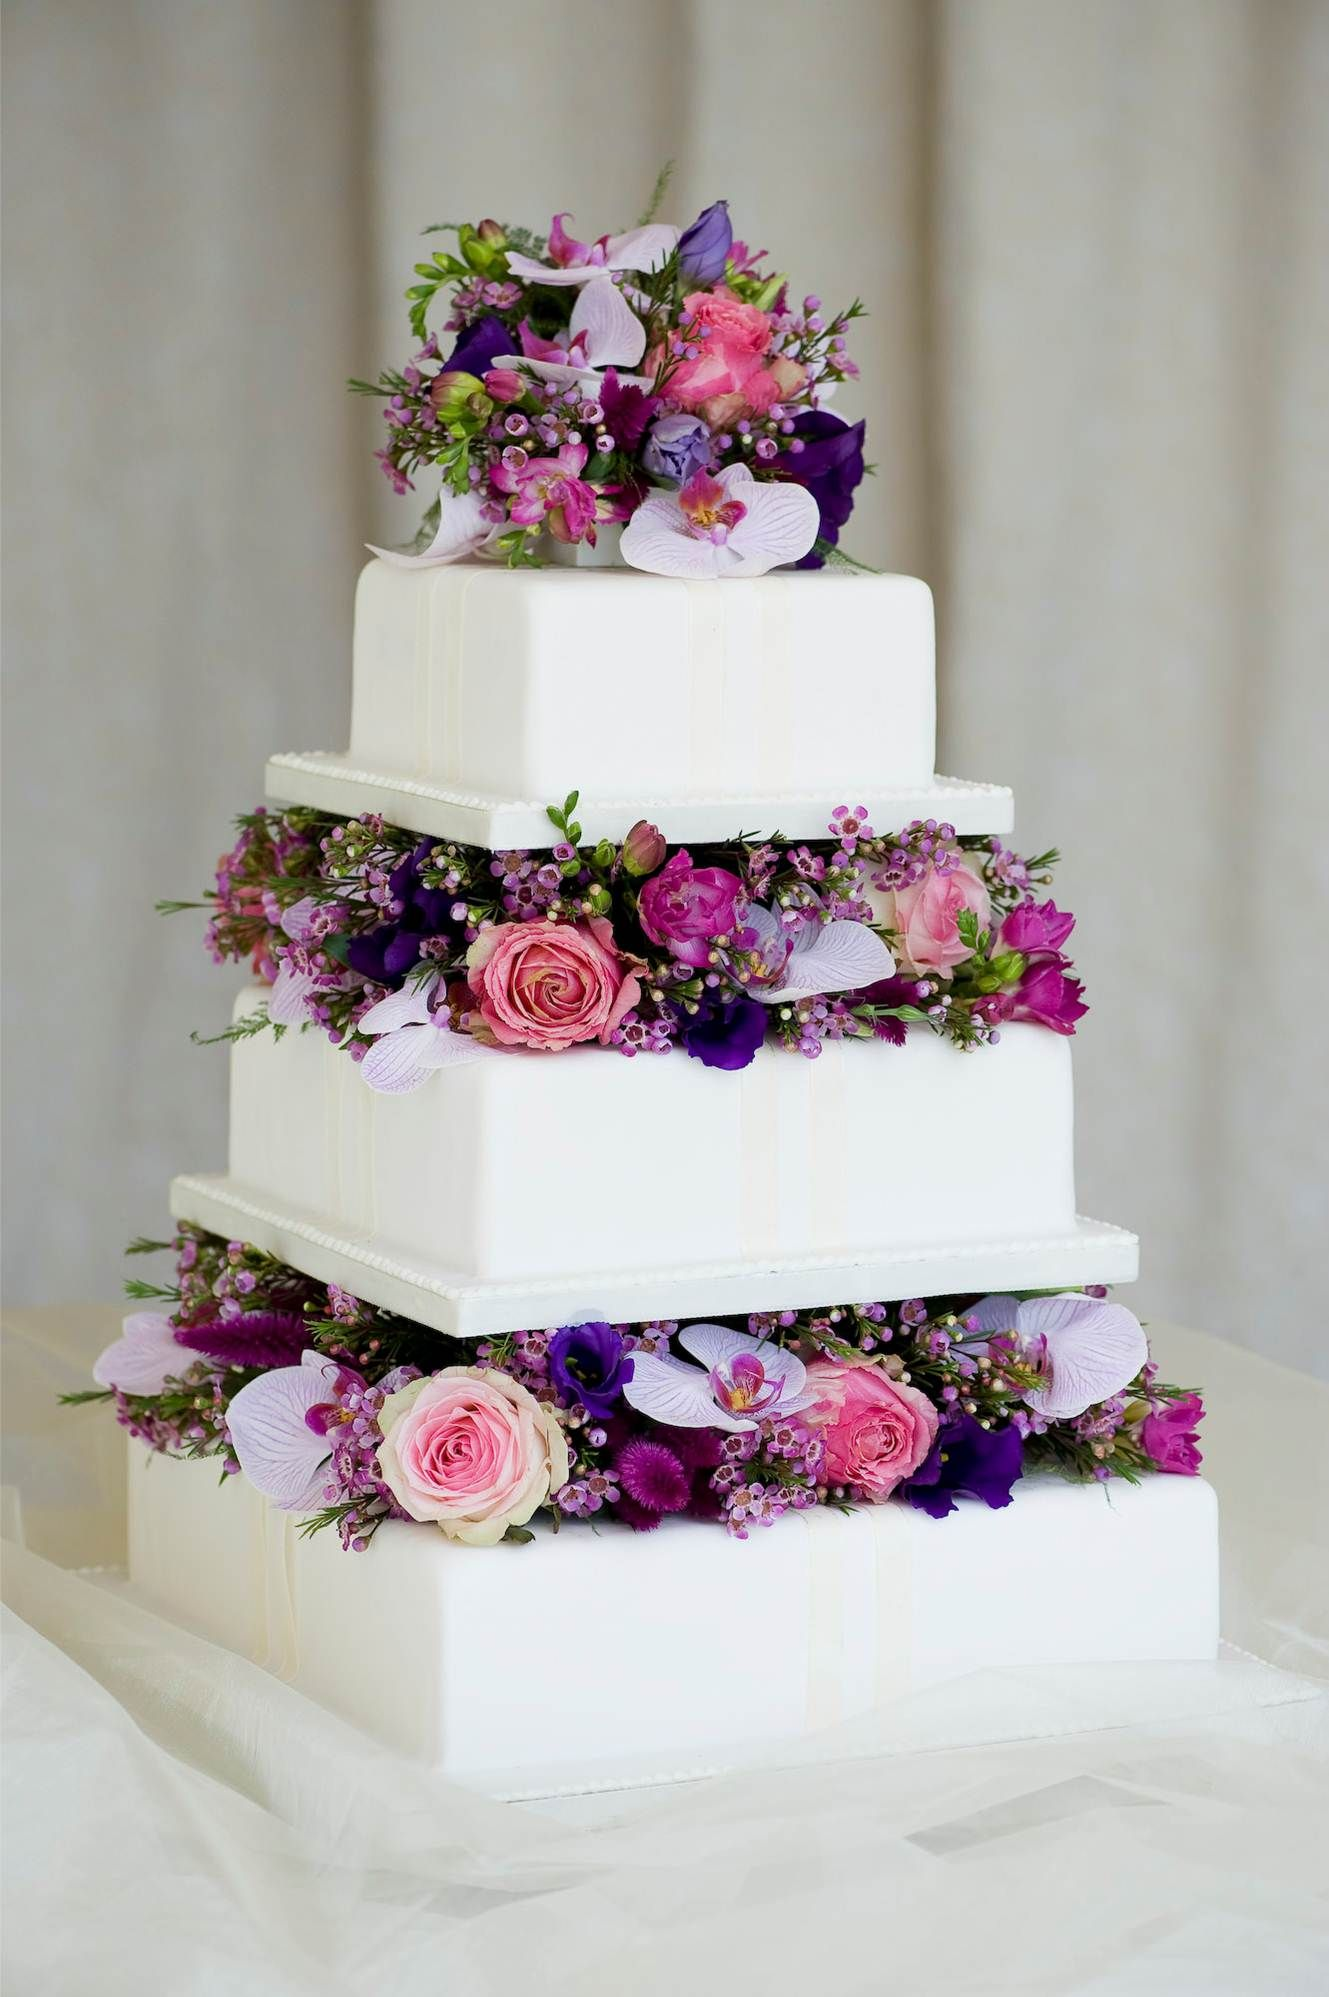 2 tier wedding cakes with flowers wedding cake with flowers wedding dress wedding cake 10174